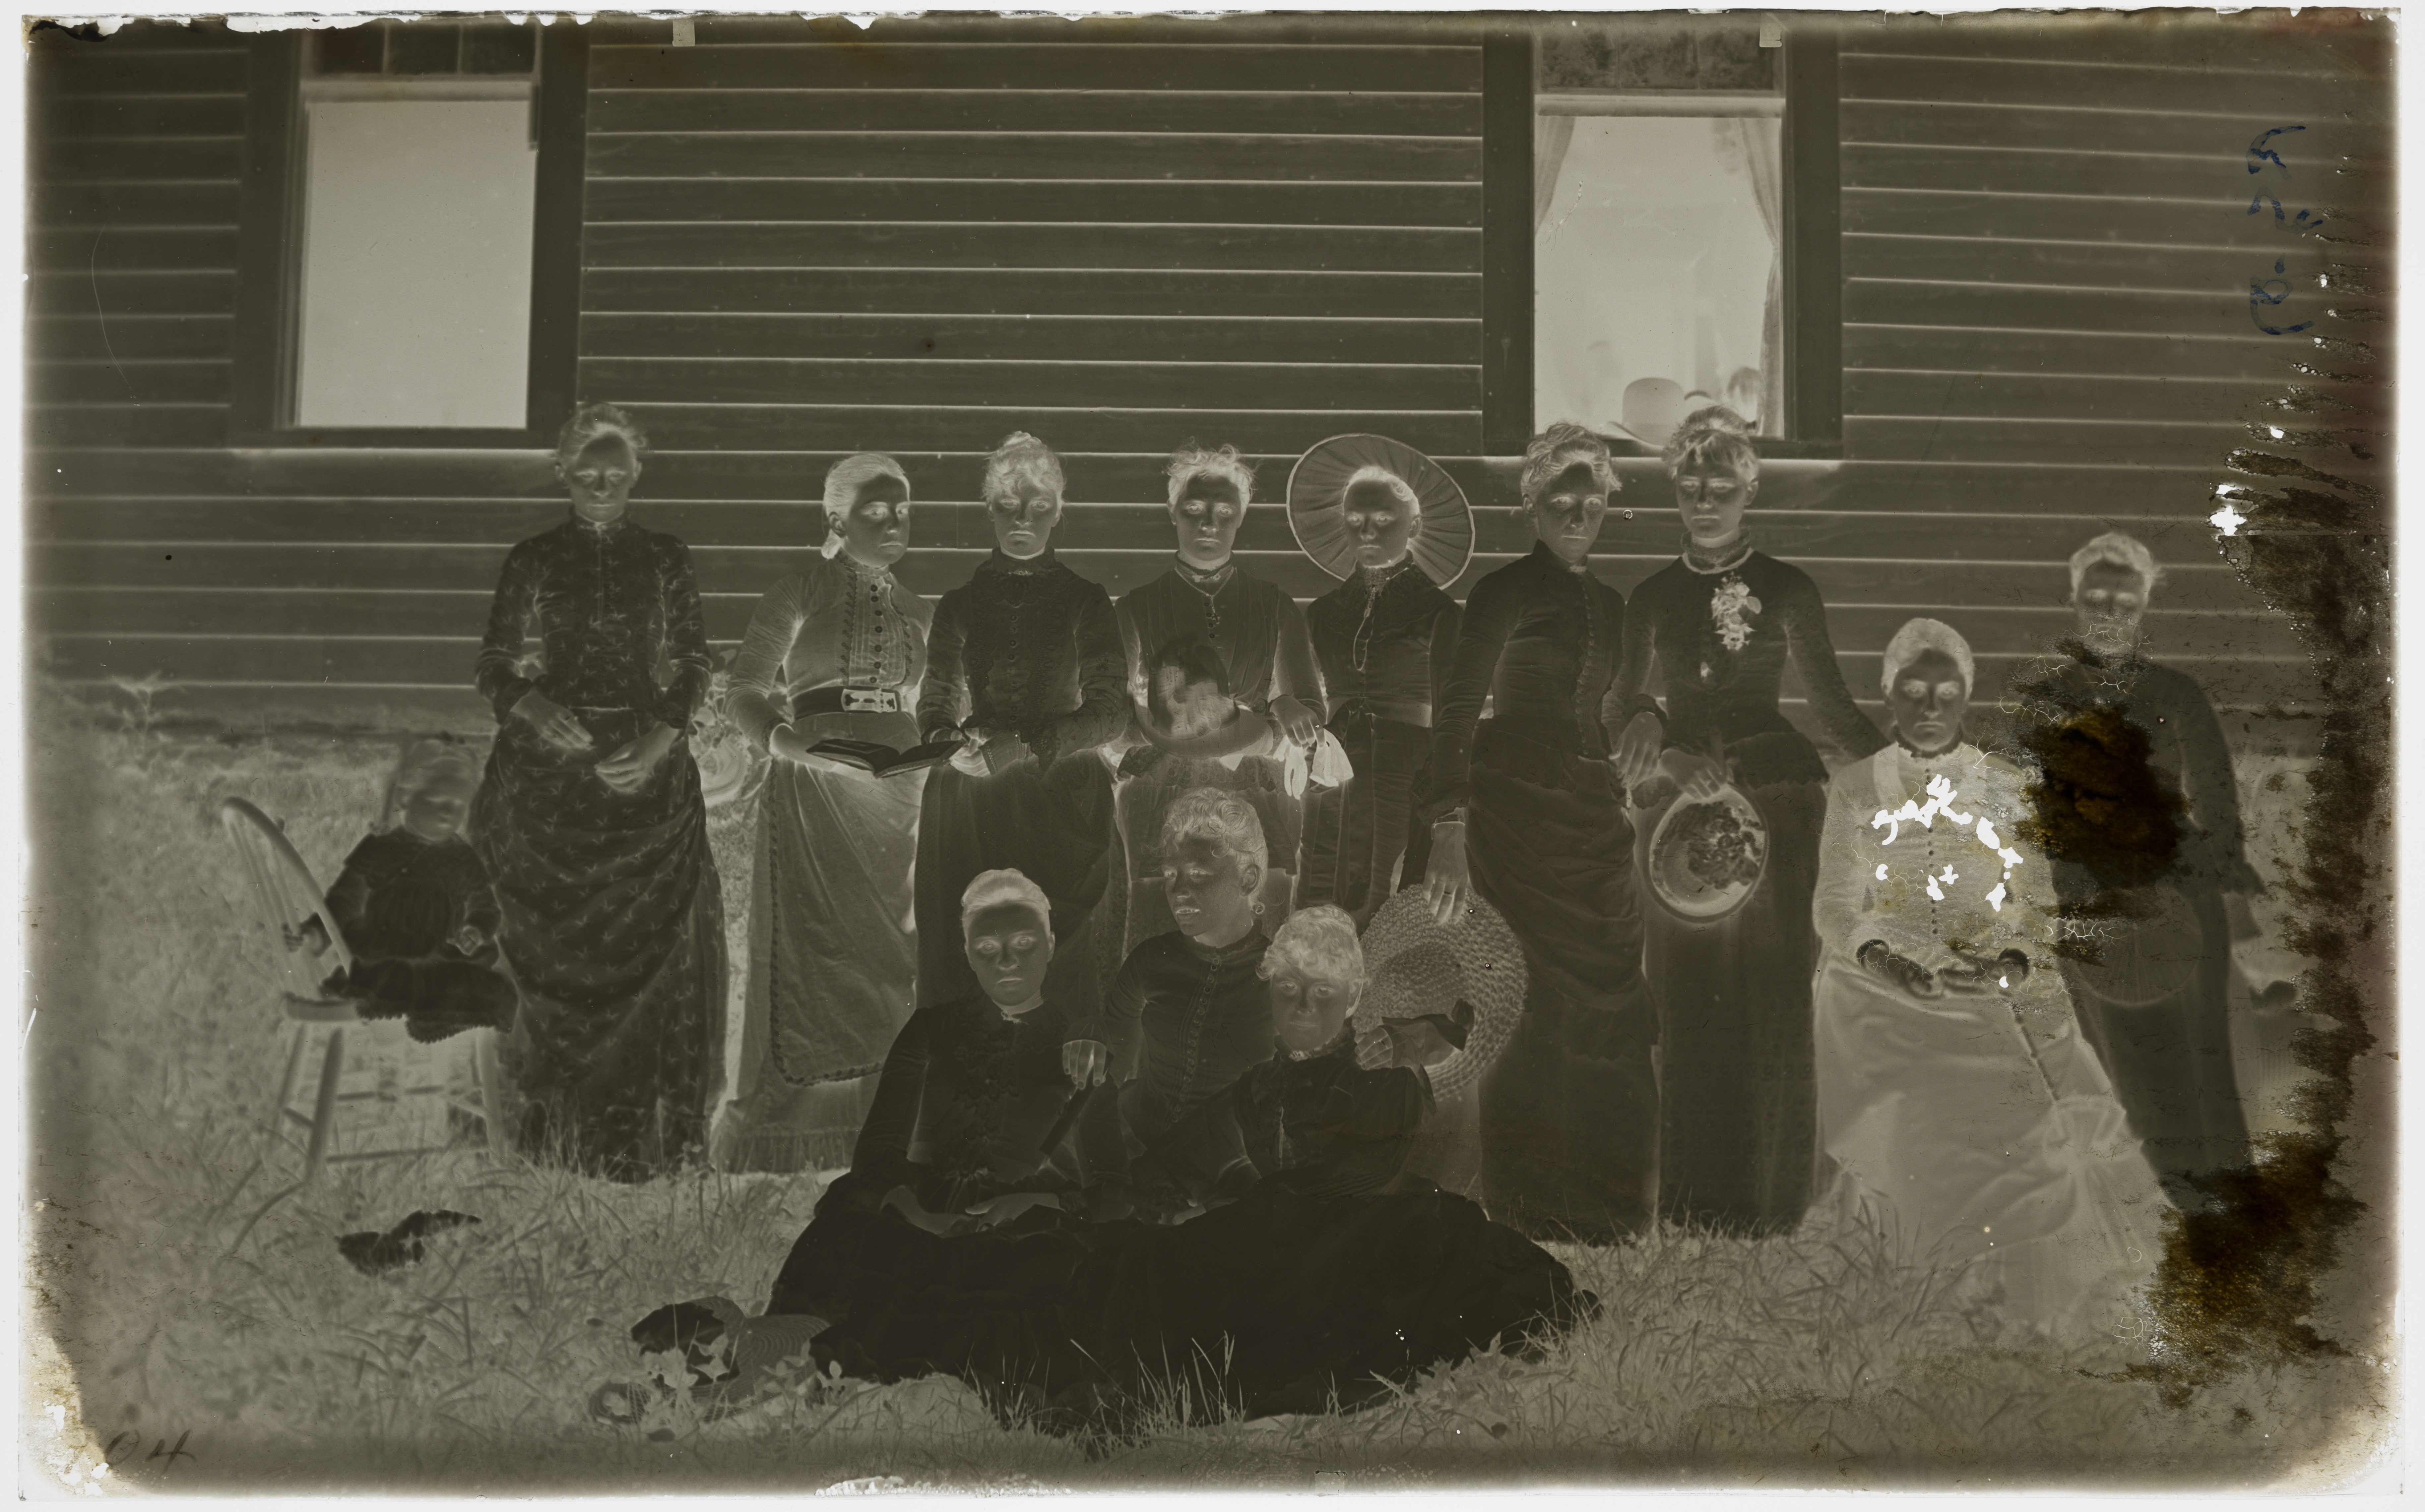 A glass plate negative of a group portrait by O.G. Felland.